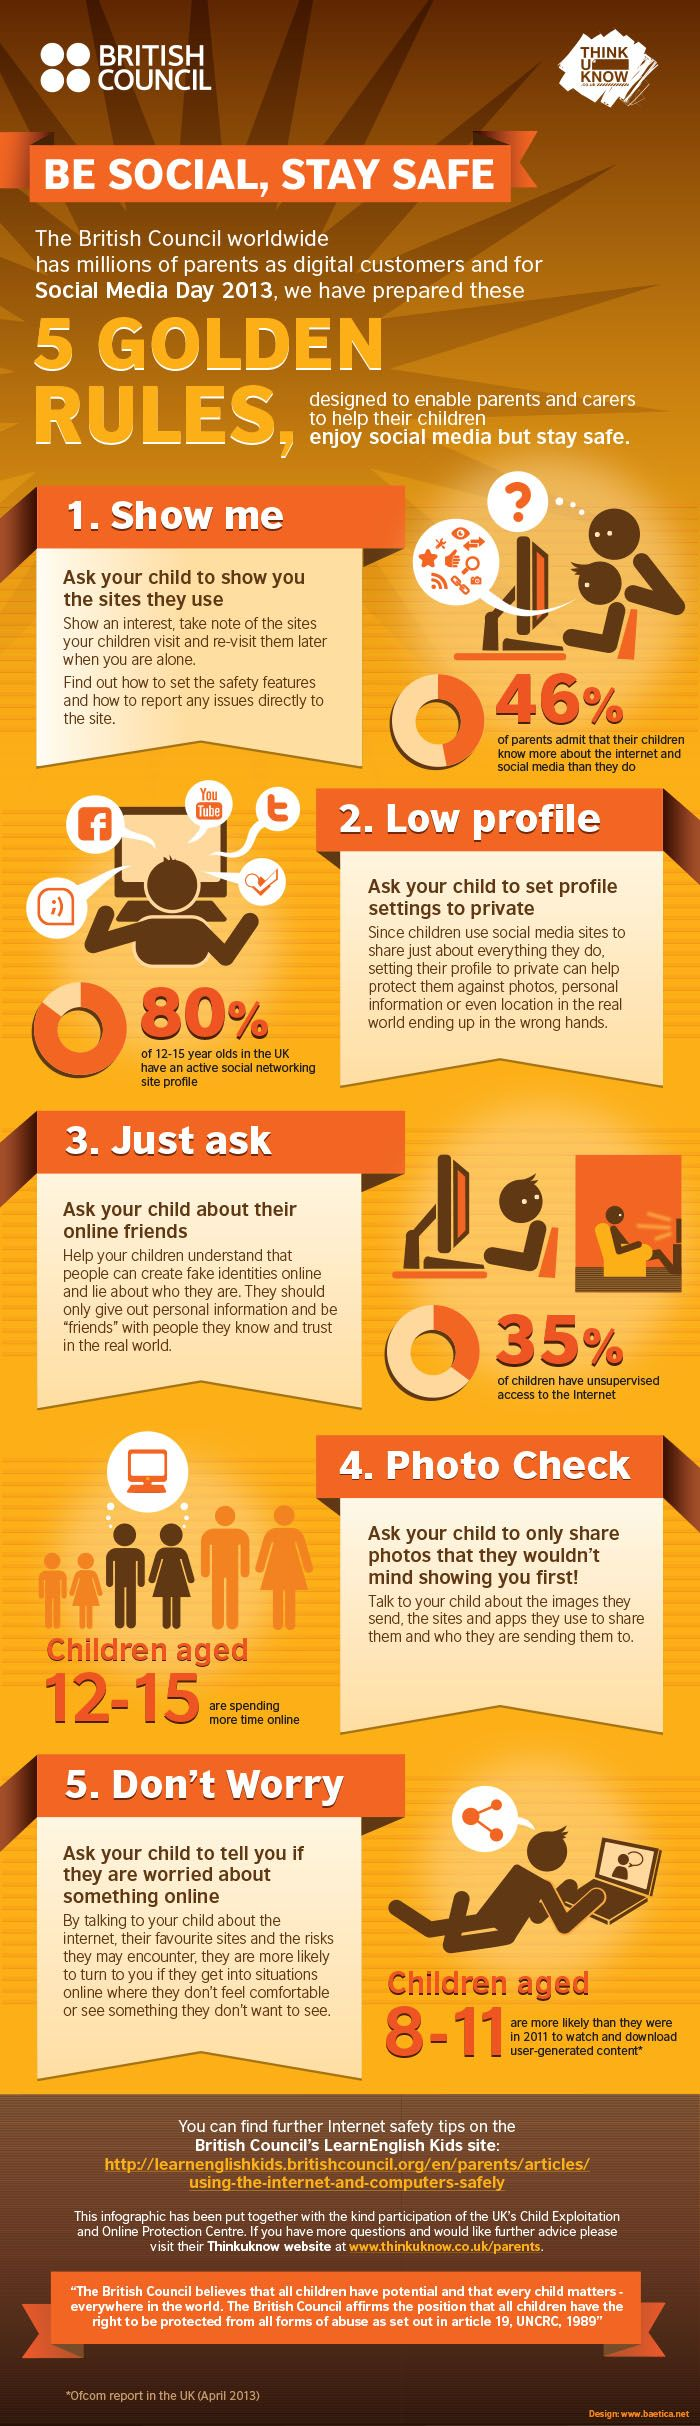 5 Golden Rules to Keep Children Safe on Social Media #Infographic #StaySafe